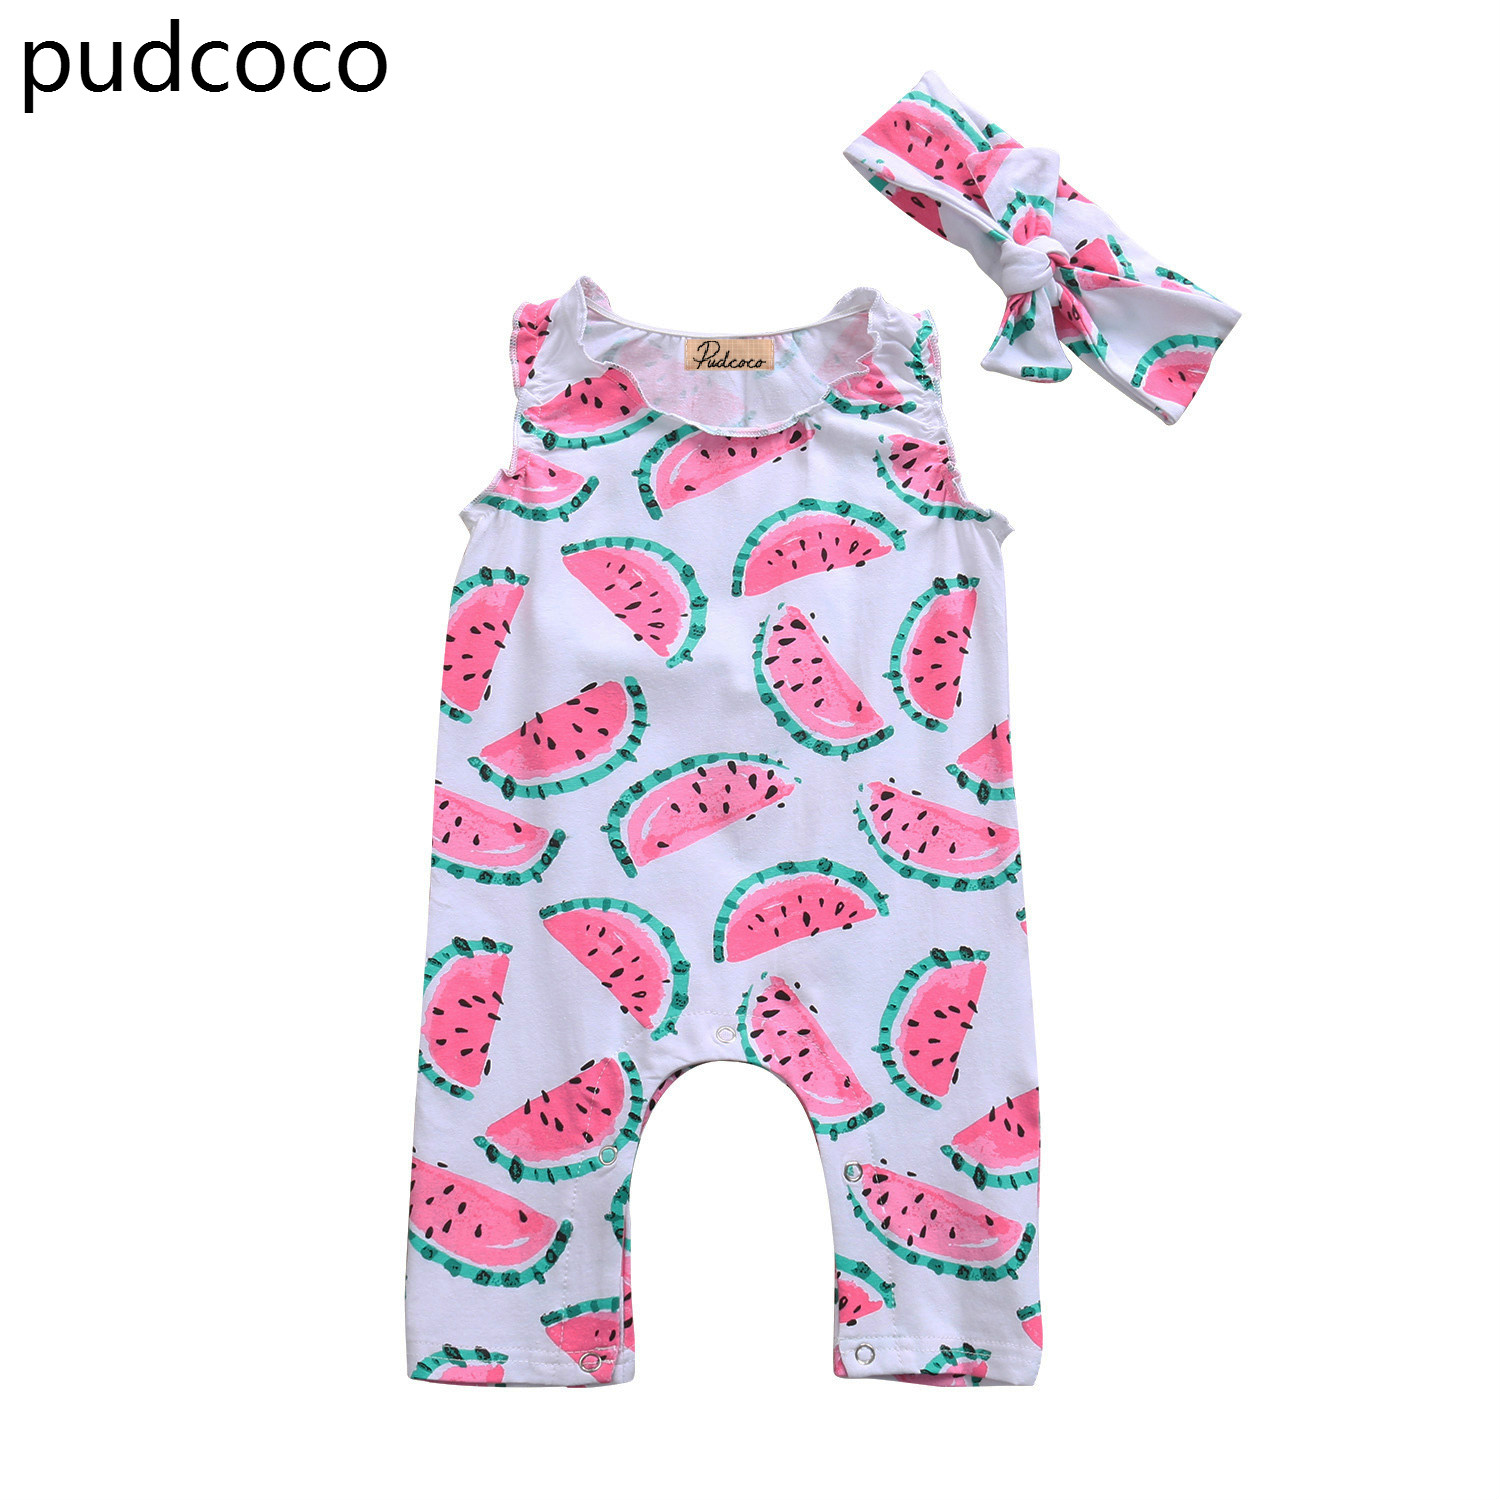 Lovely Toddler Baby Girls Watermelon Rompers Sleeveless Summer Romper Jumpsuit Headband Cotton Outfits Clothes 2017 summer toddler kids girls striped baby romper off shoulder flare sleeve cotton clothes jumpsuit outfits sunsuit 0 4t